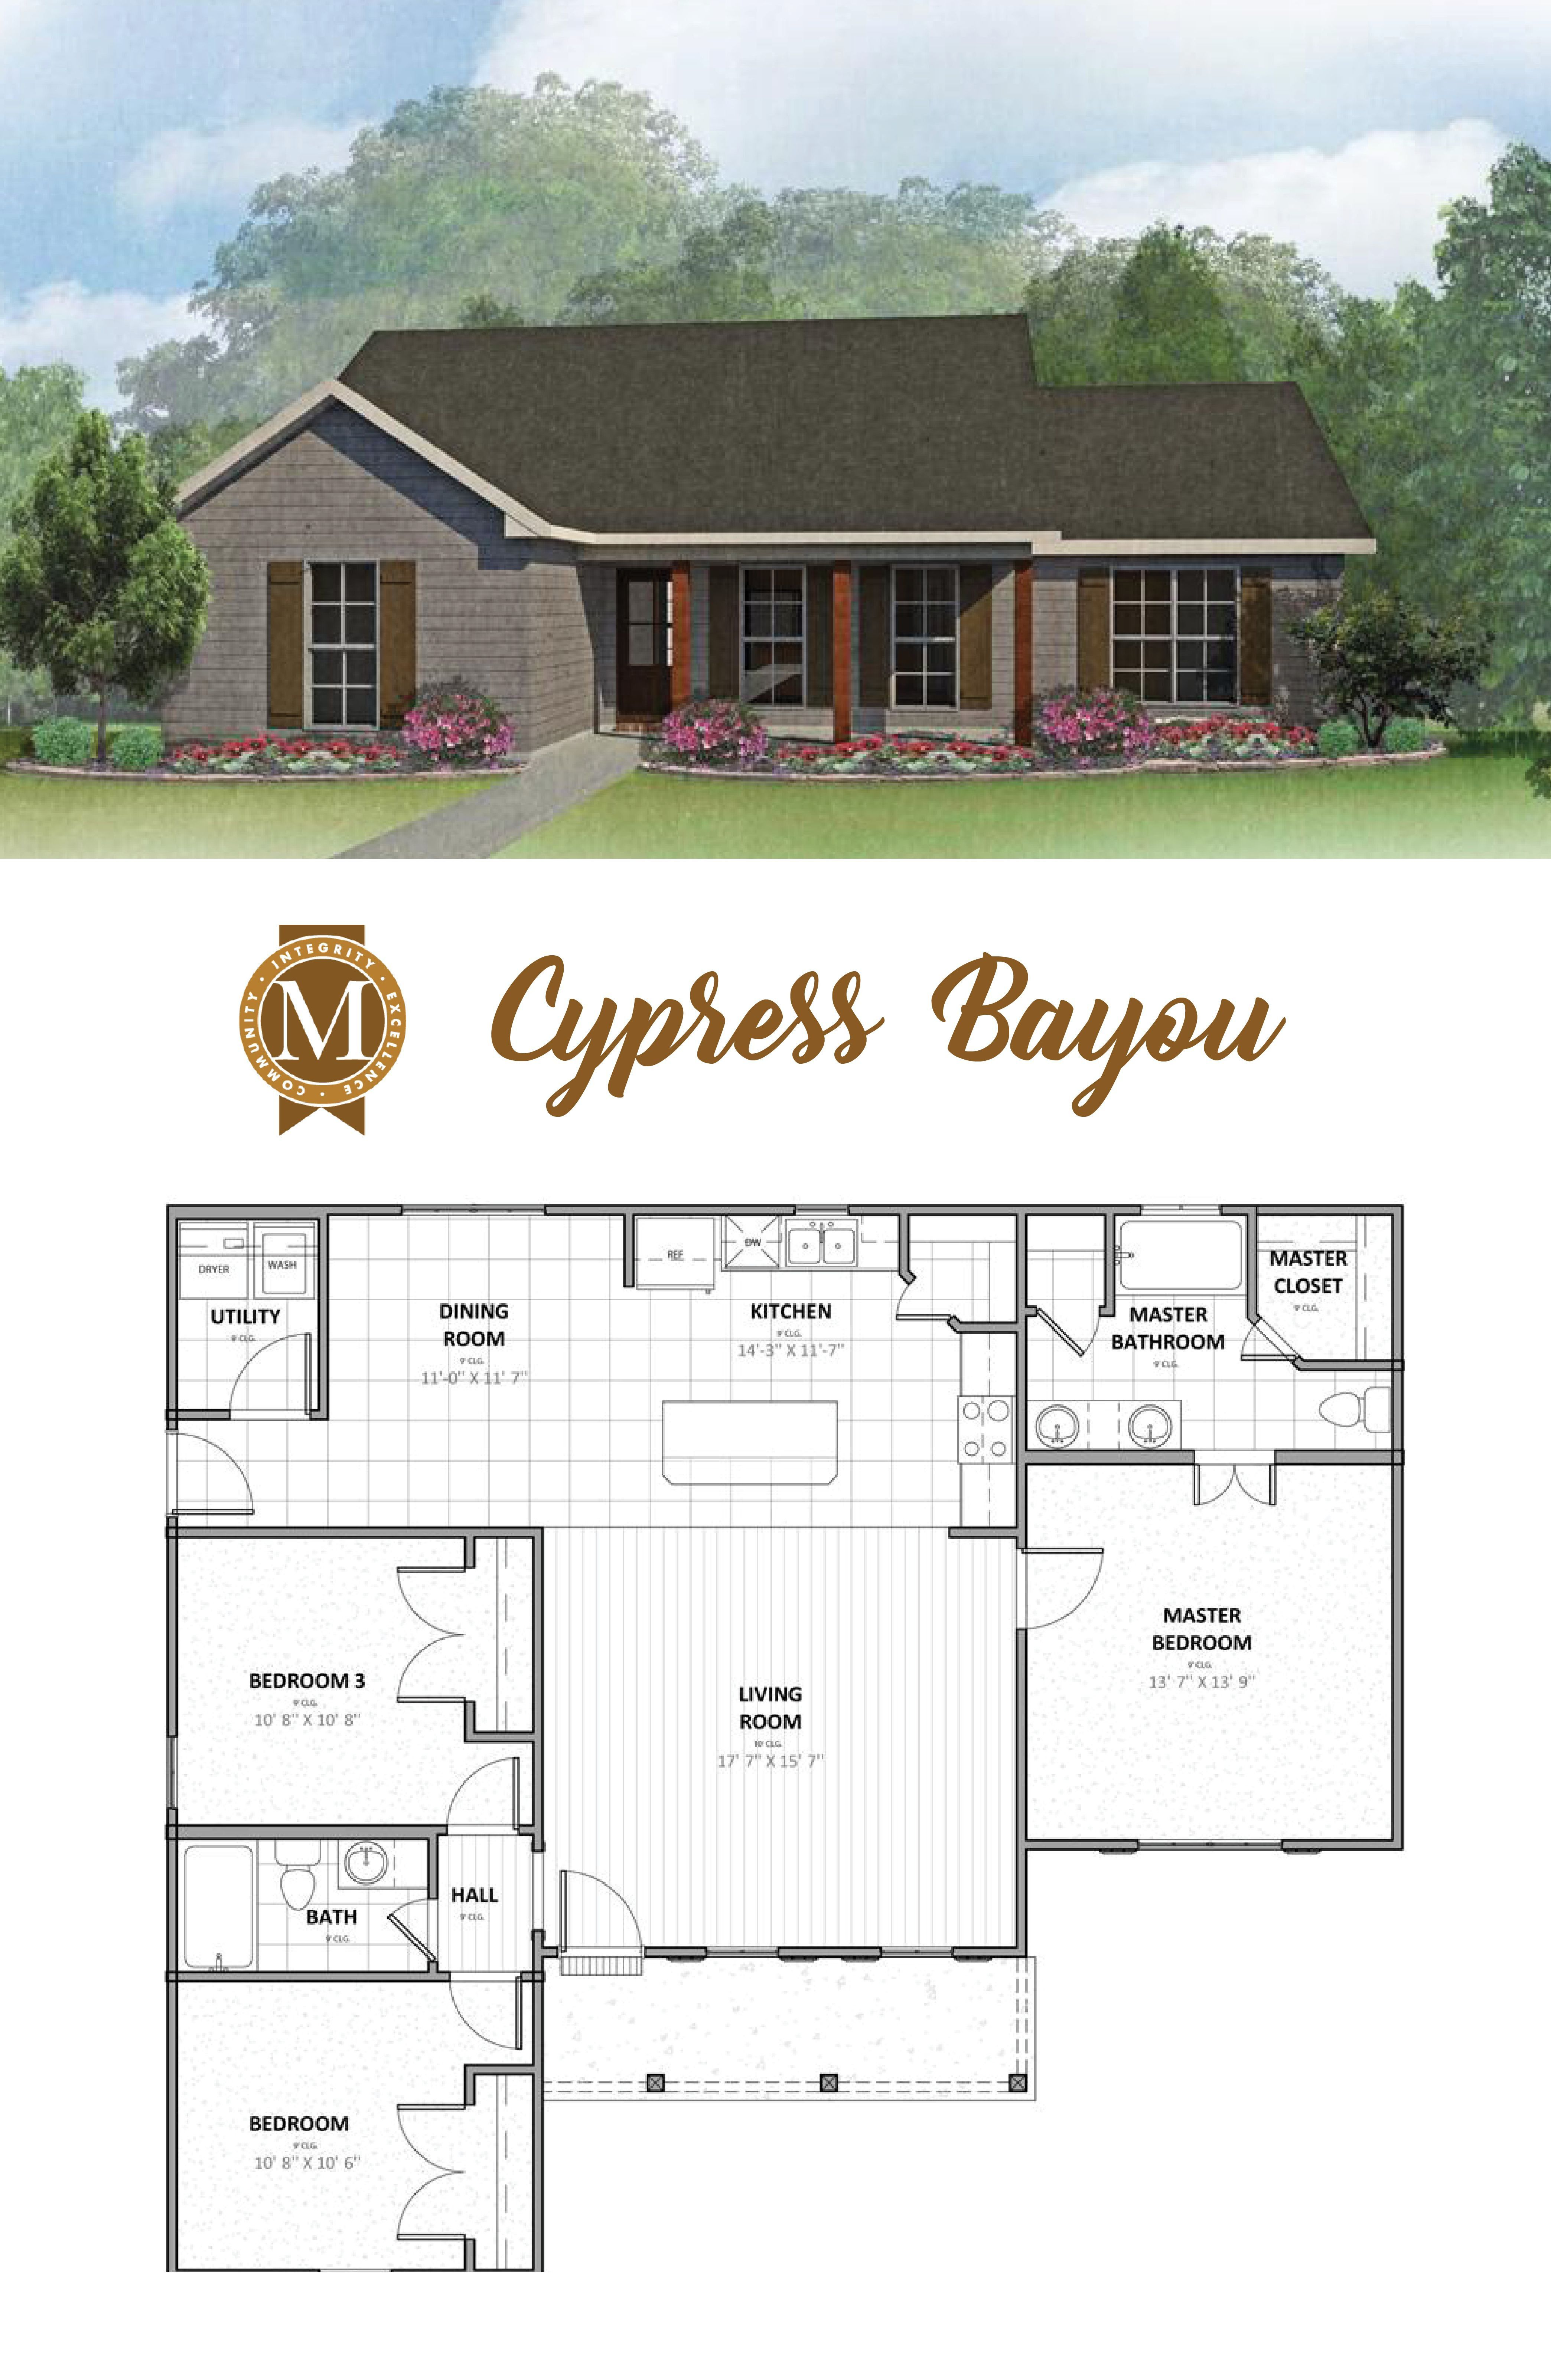 house plans in baton rouge 2020 new house plans house